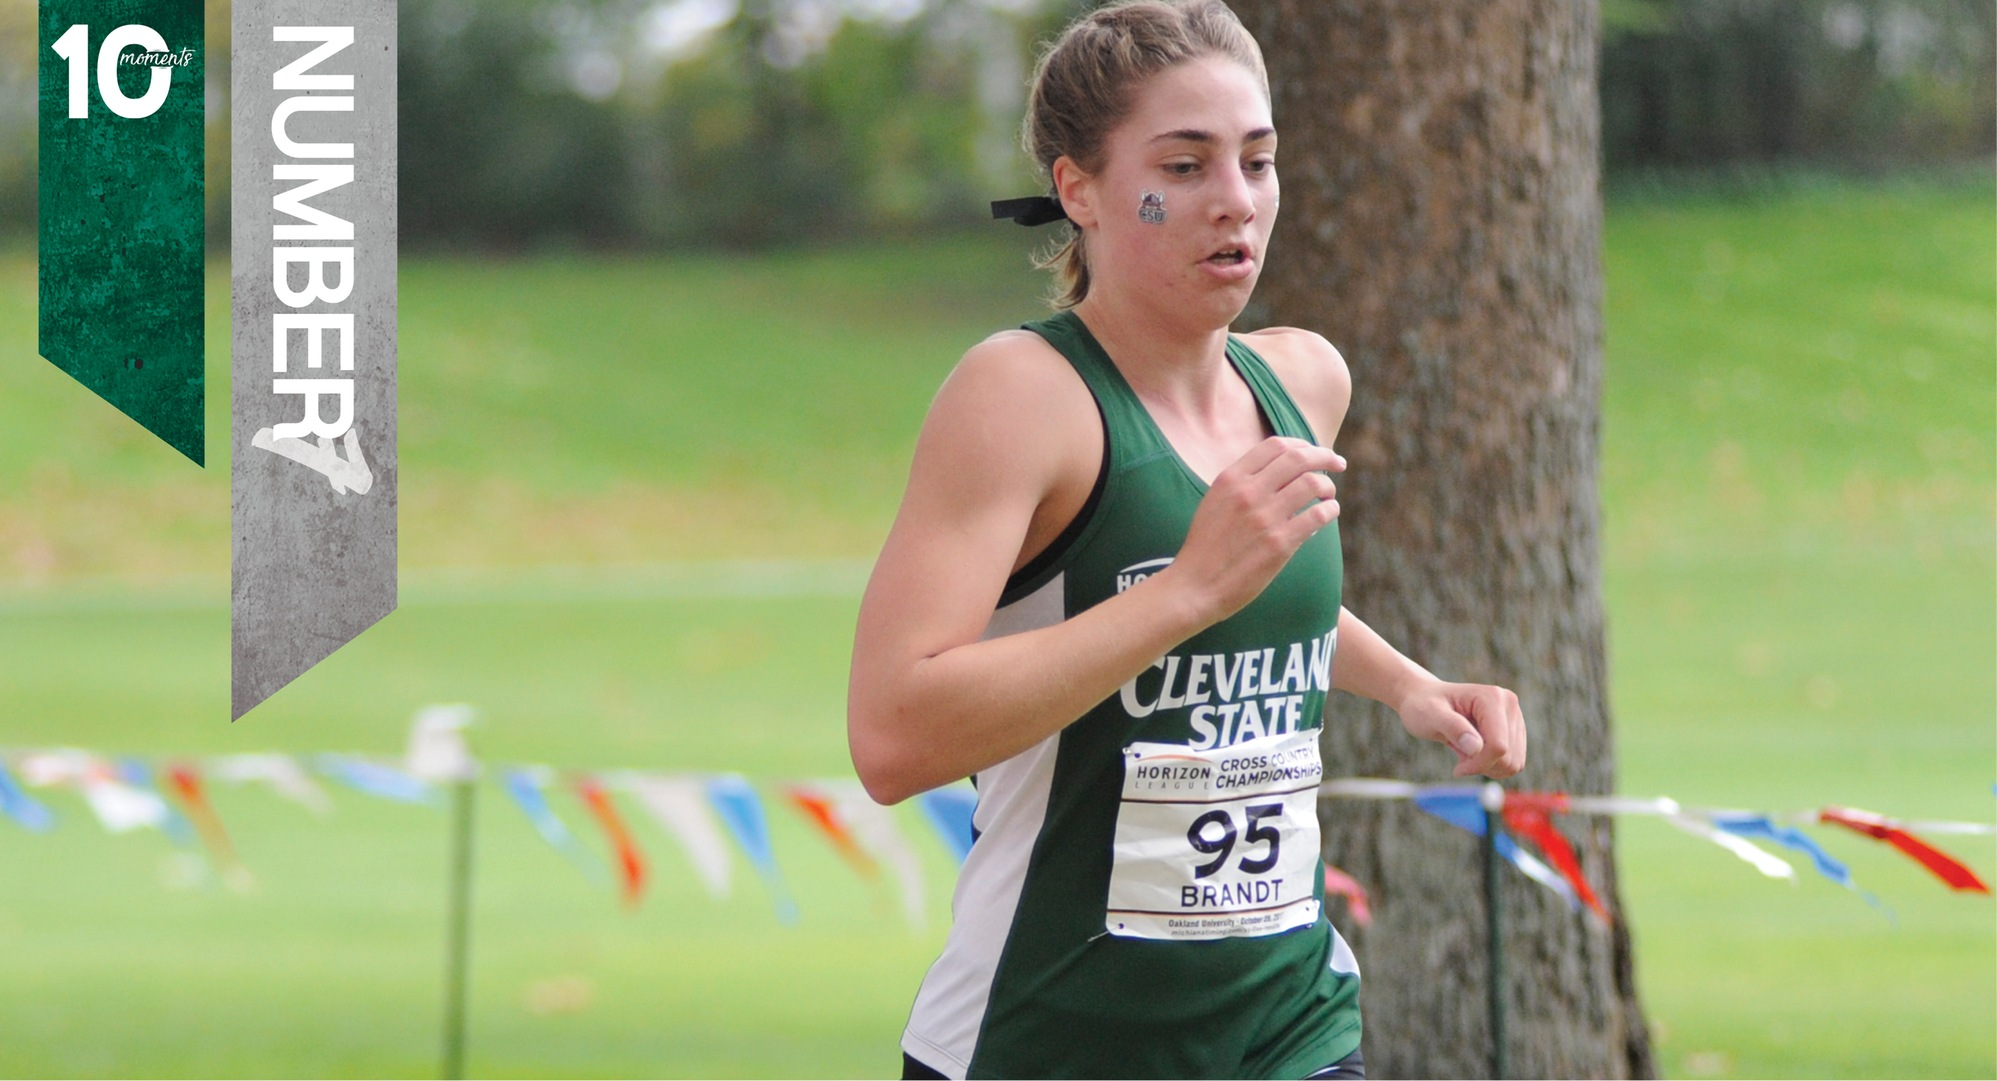 2017-18 CSU Athletics Top 10 Moments | #7 - Anna Brandt Leads Cross Country at Horizon League Championship